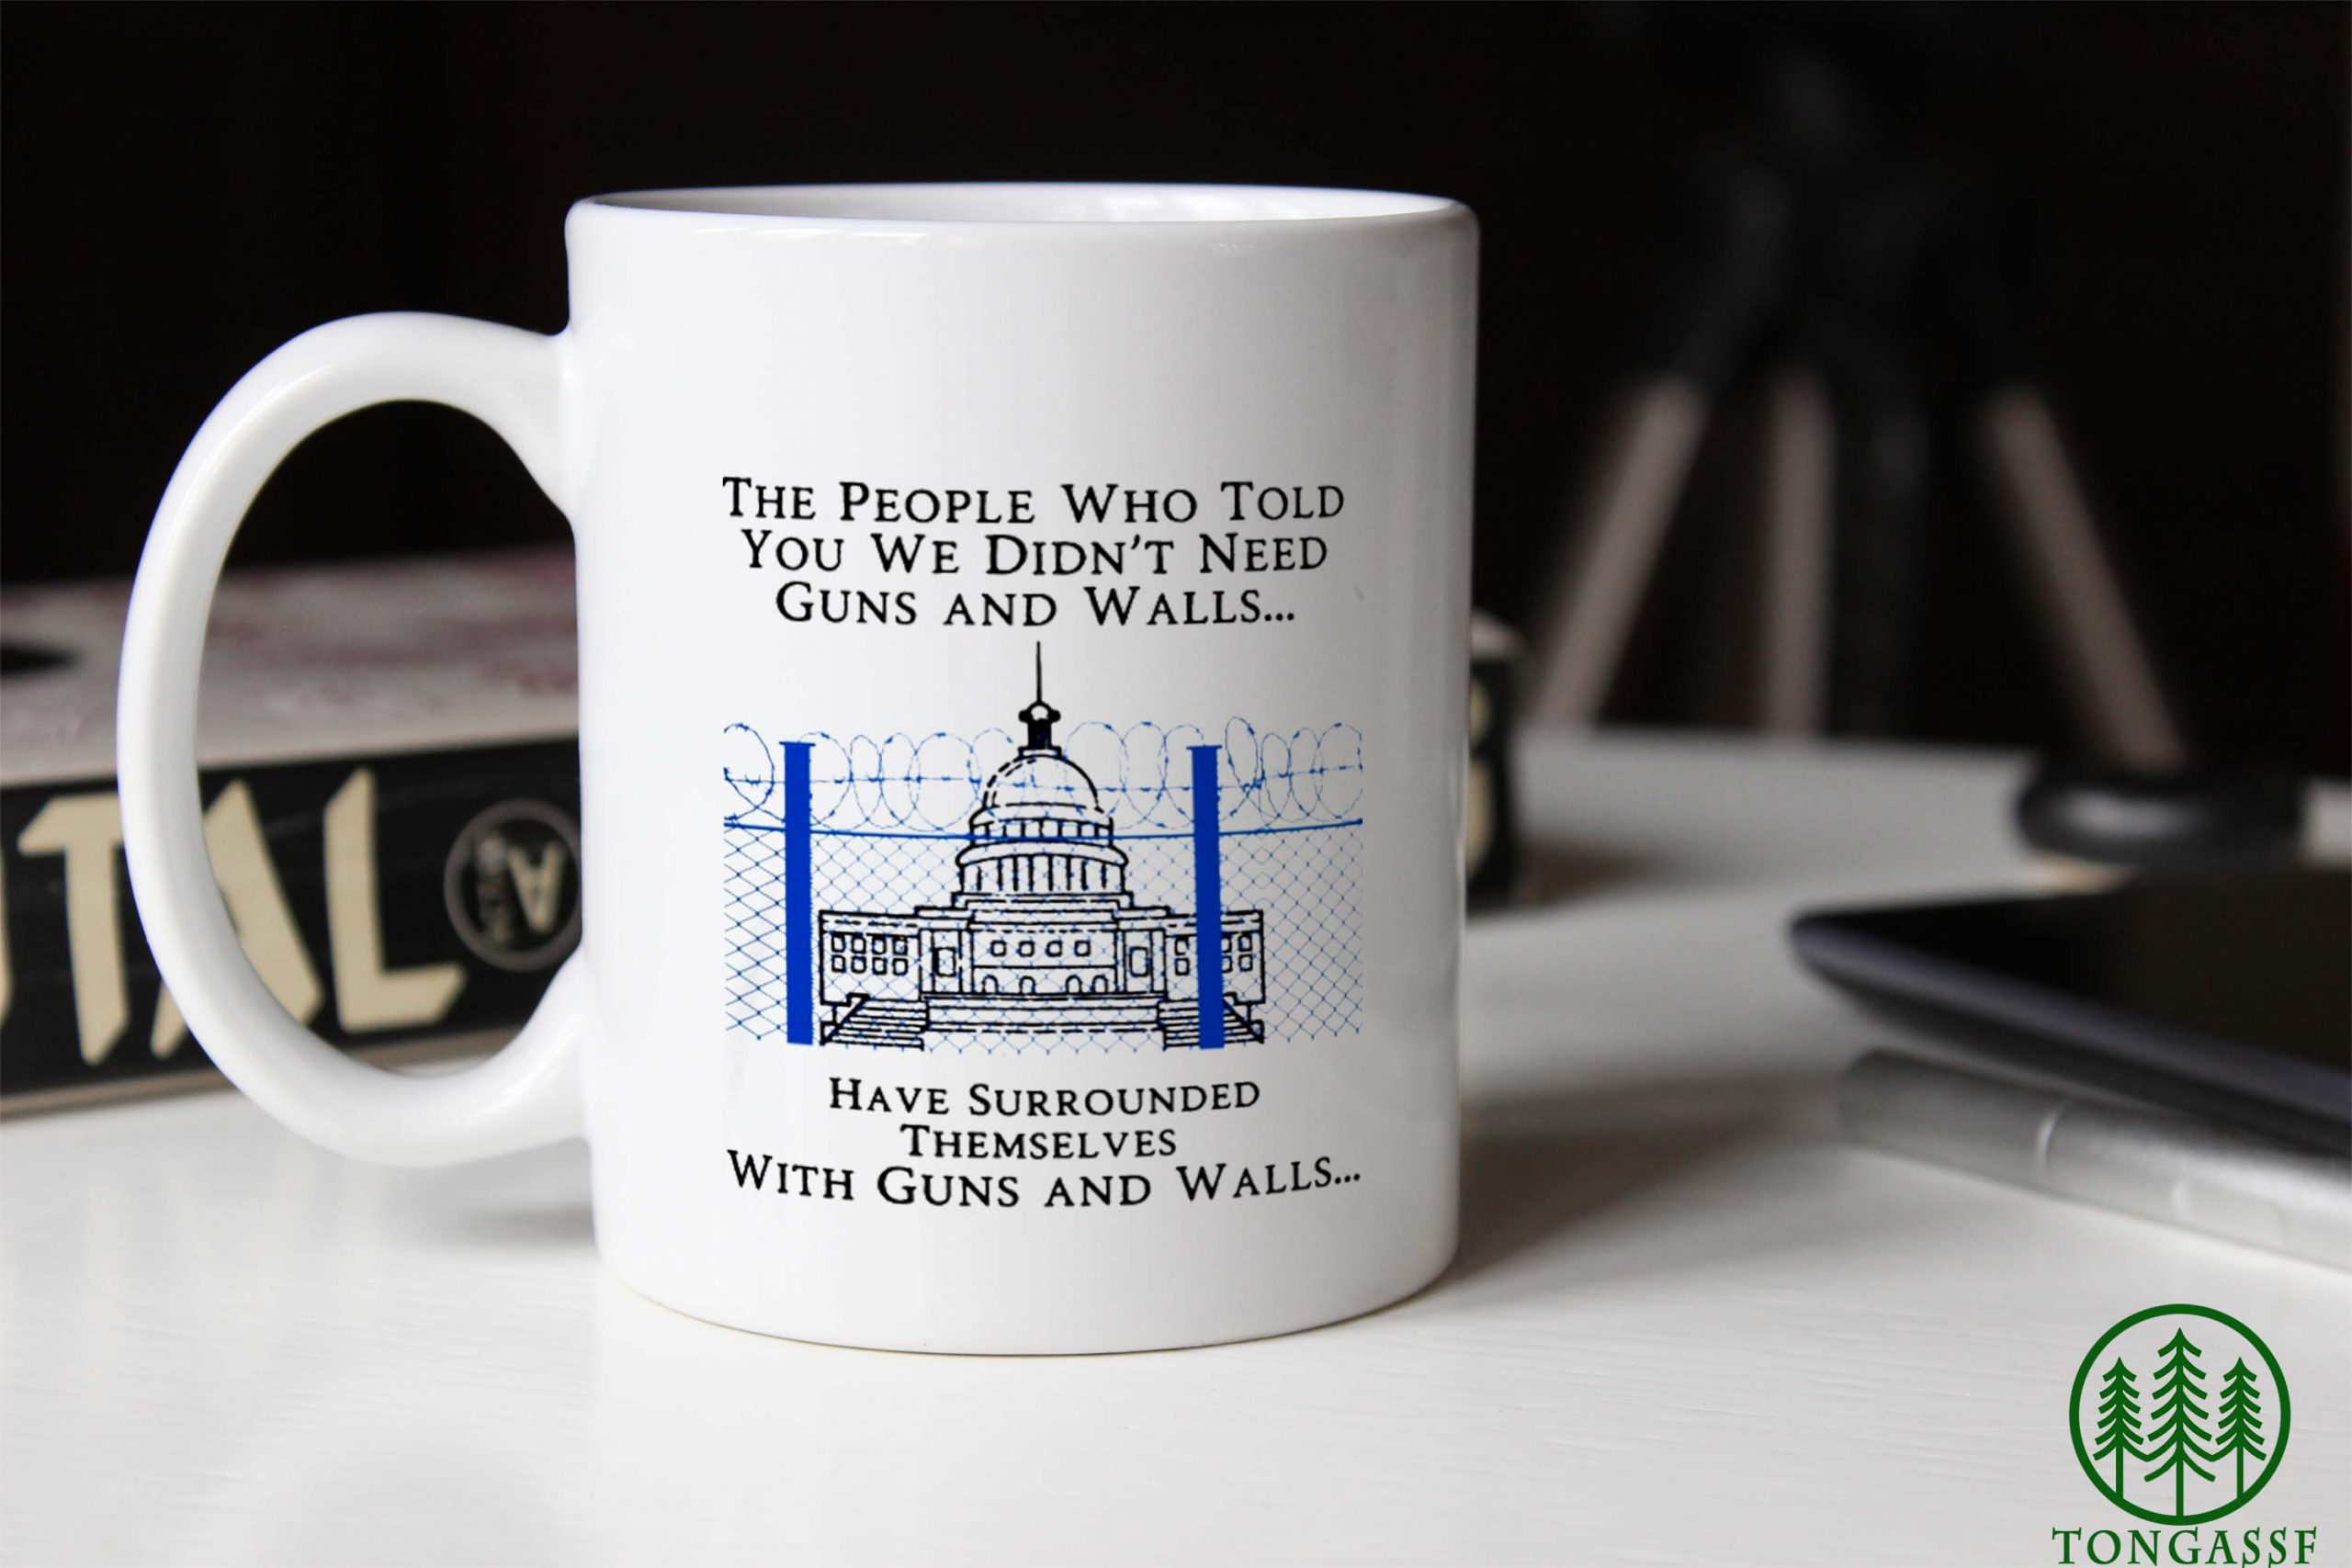 The people who told you we didn't need guns and walls white ceramic mug